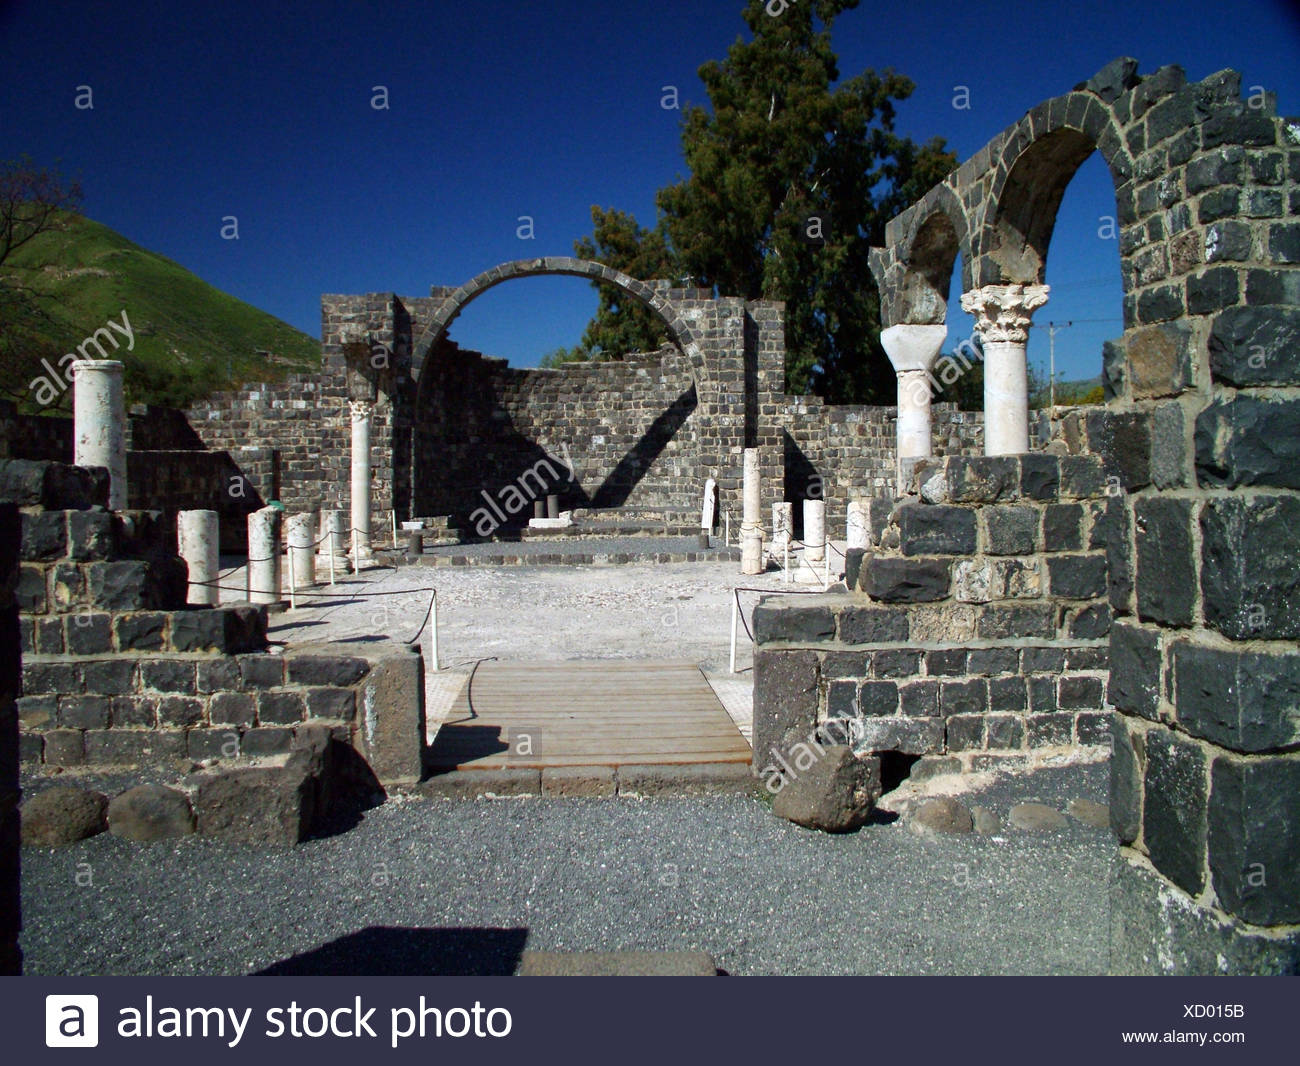 The Byzantine monastery at Kursi Israel - Stock Image